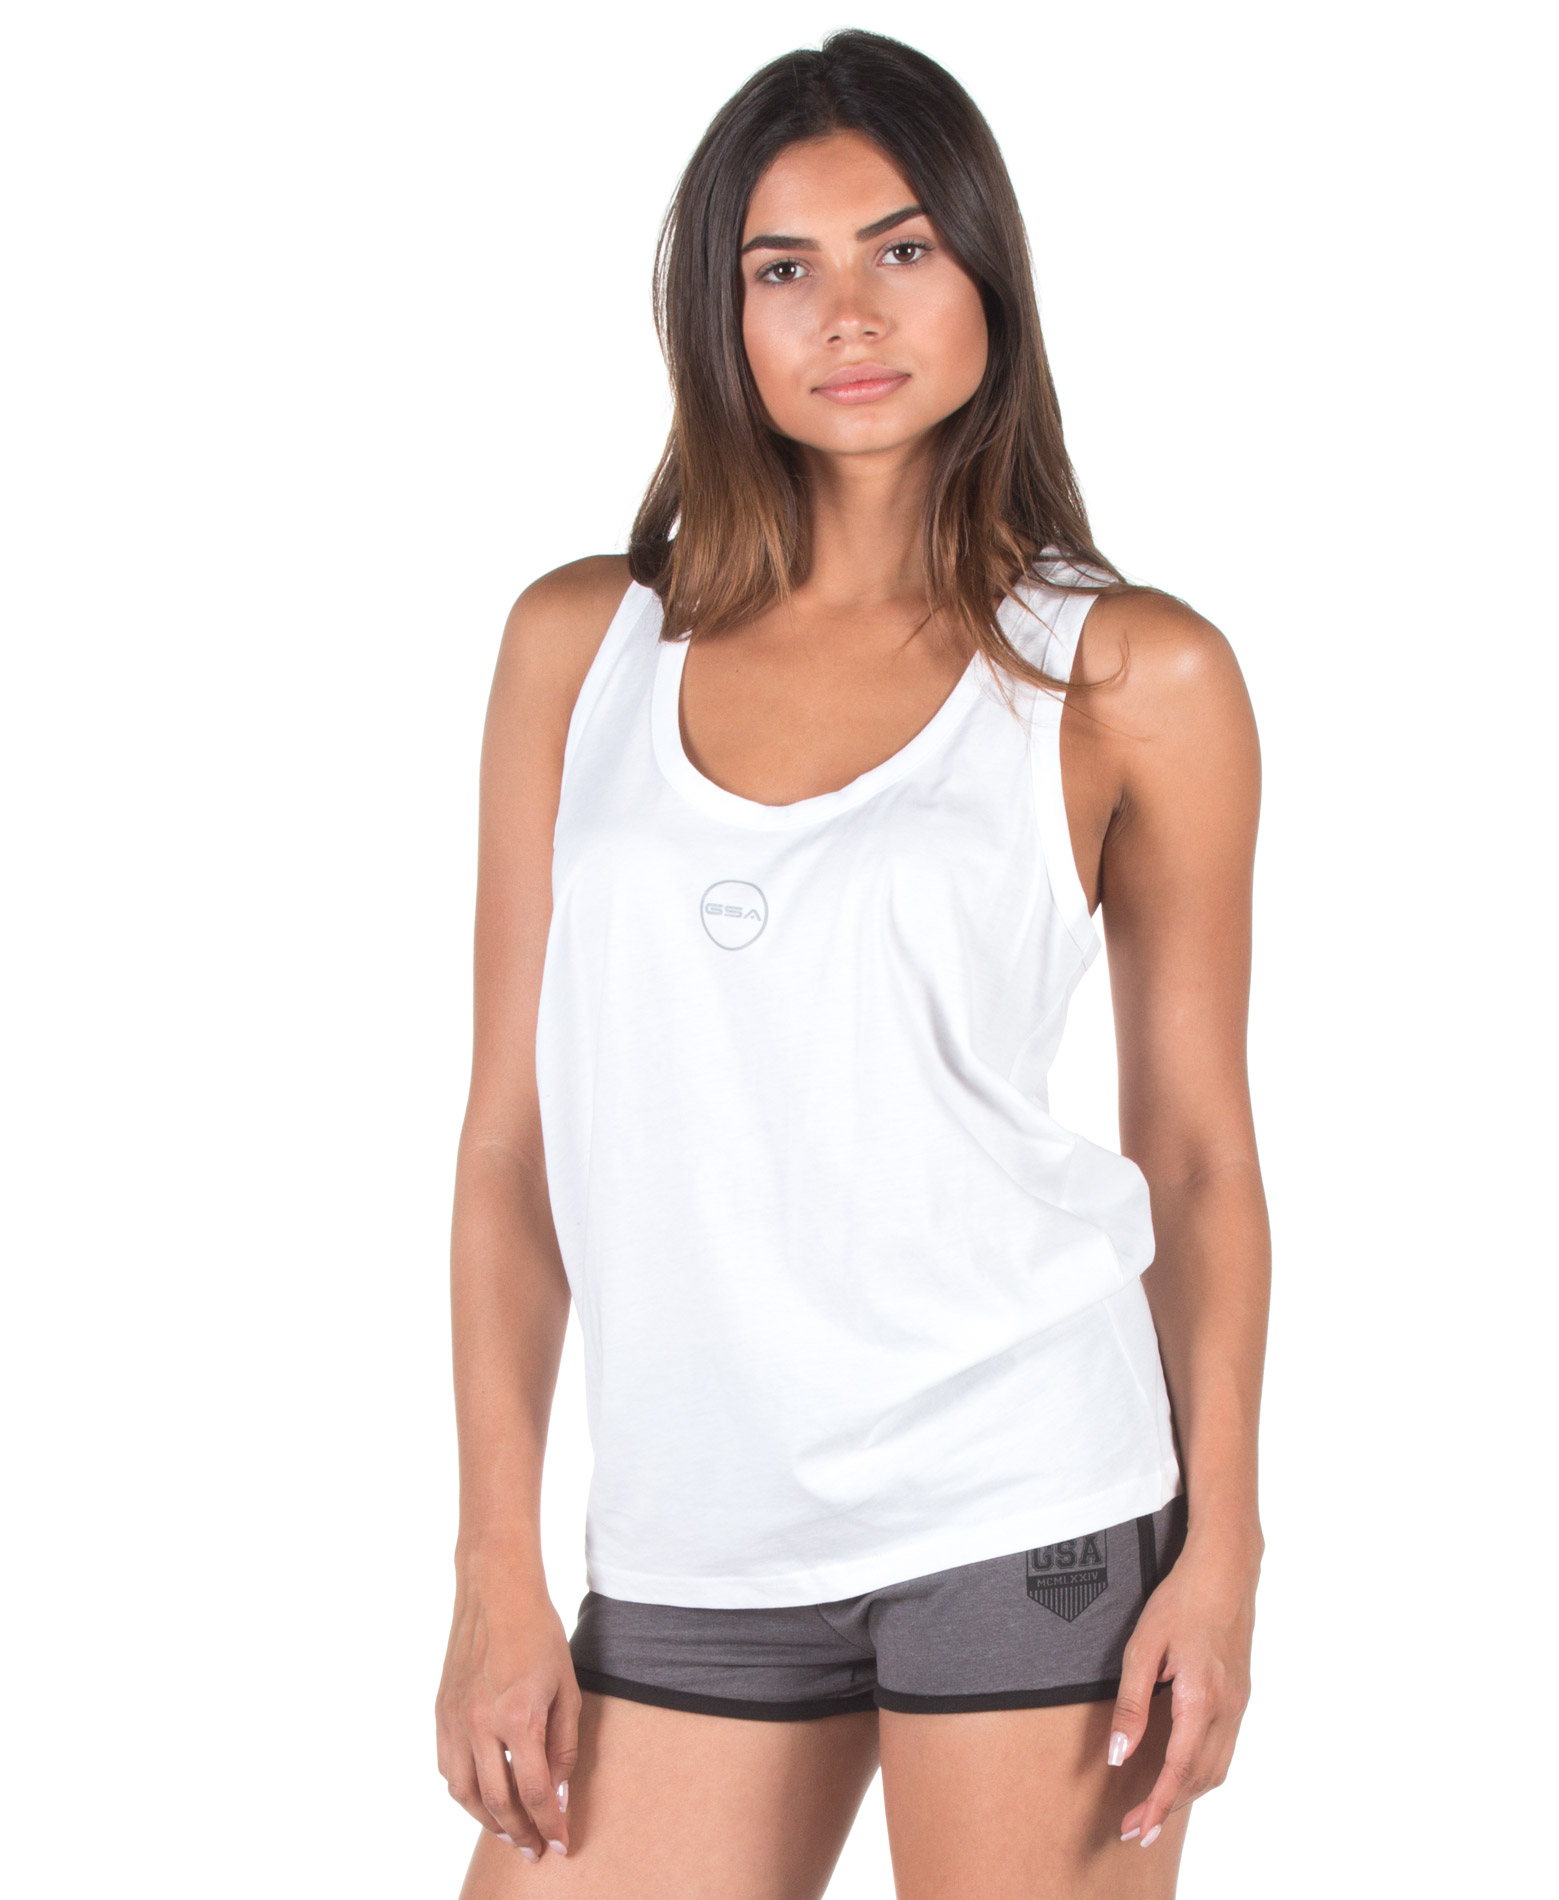 GSA BASIC T-BACK 88-2714-WHITE Λευκό